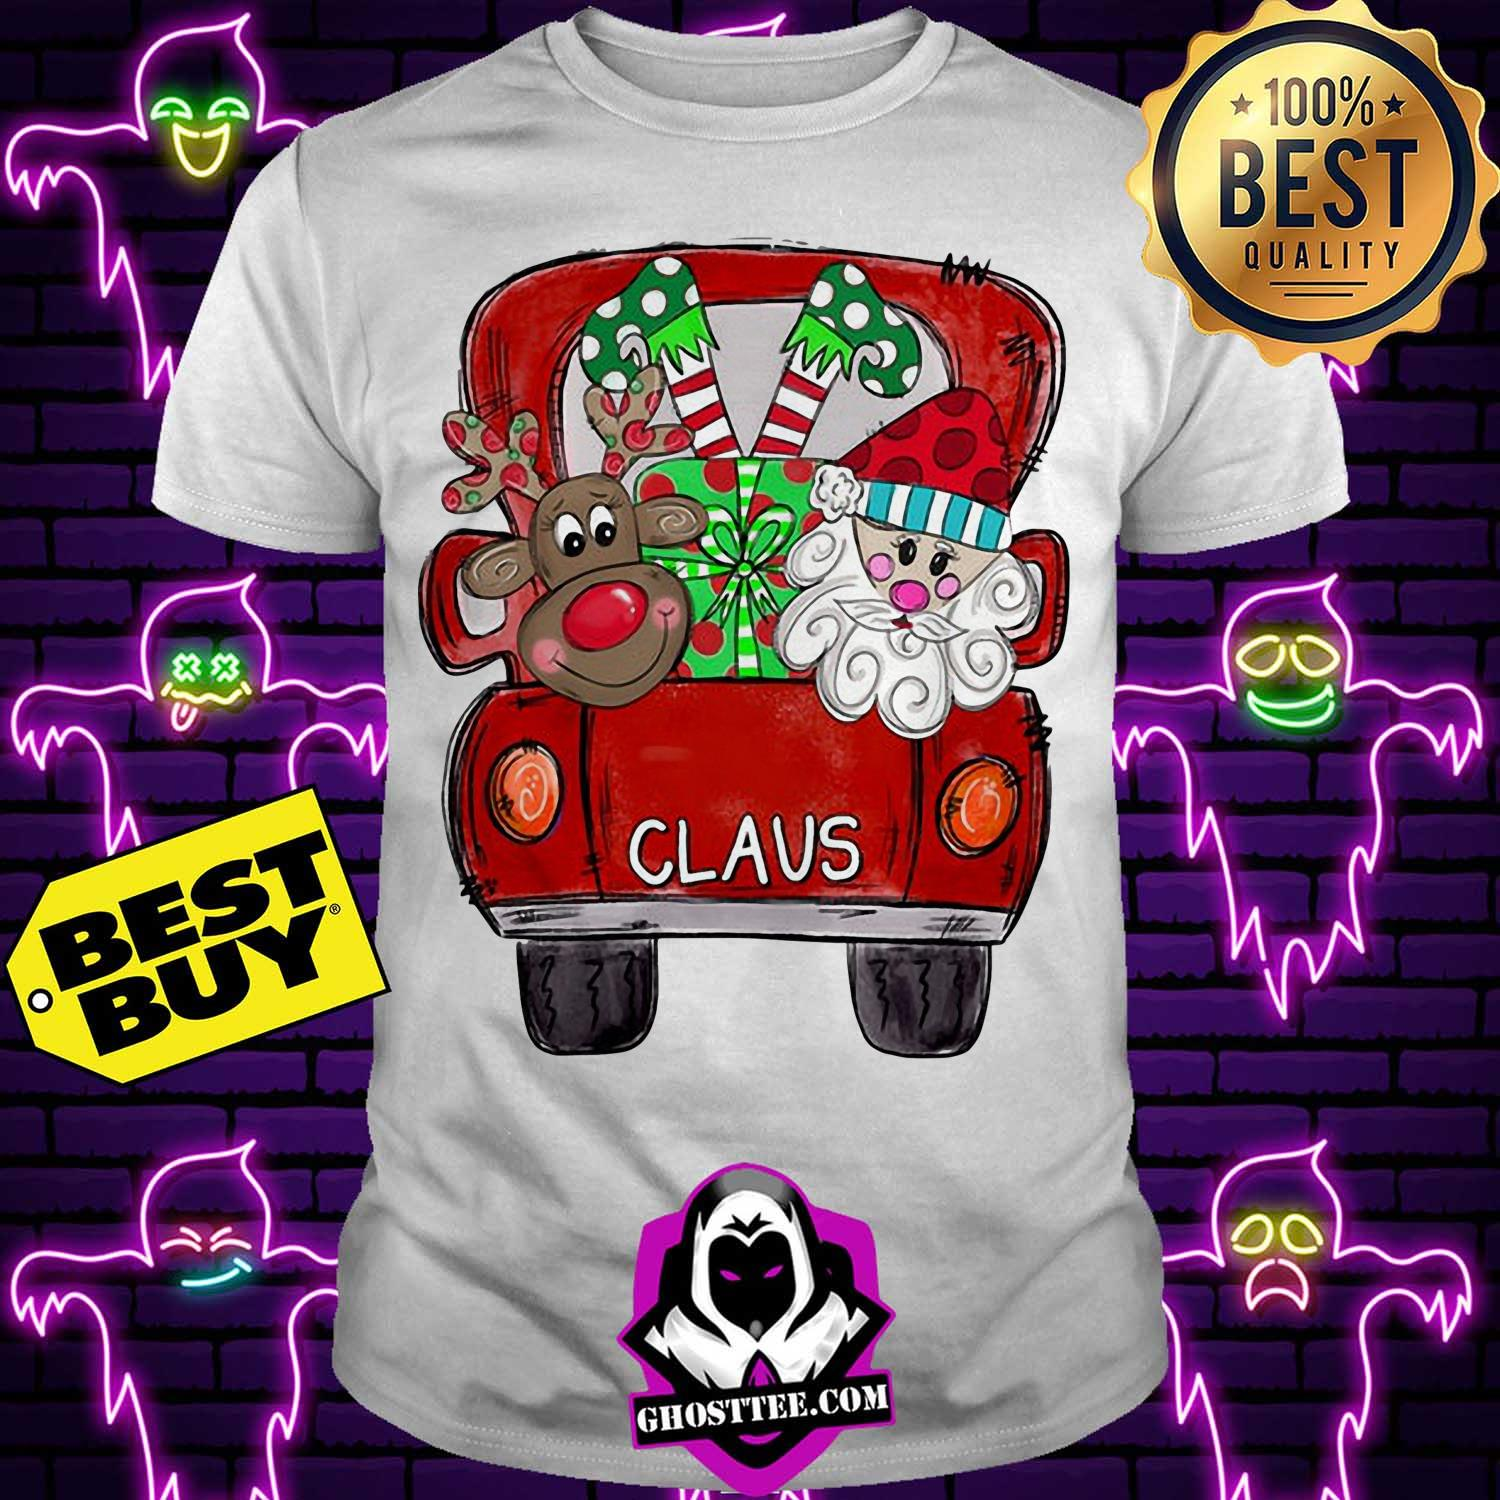 merry christmas with reindeer and santa claus on truck hoodie - Merry Christmas With Reindeer And Santa Claus On Truck Shirt